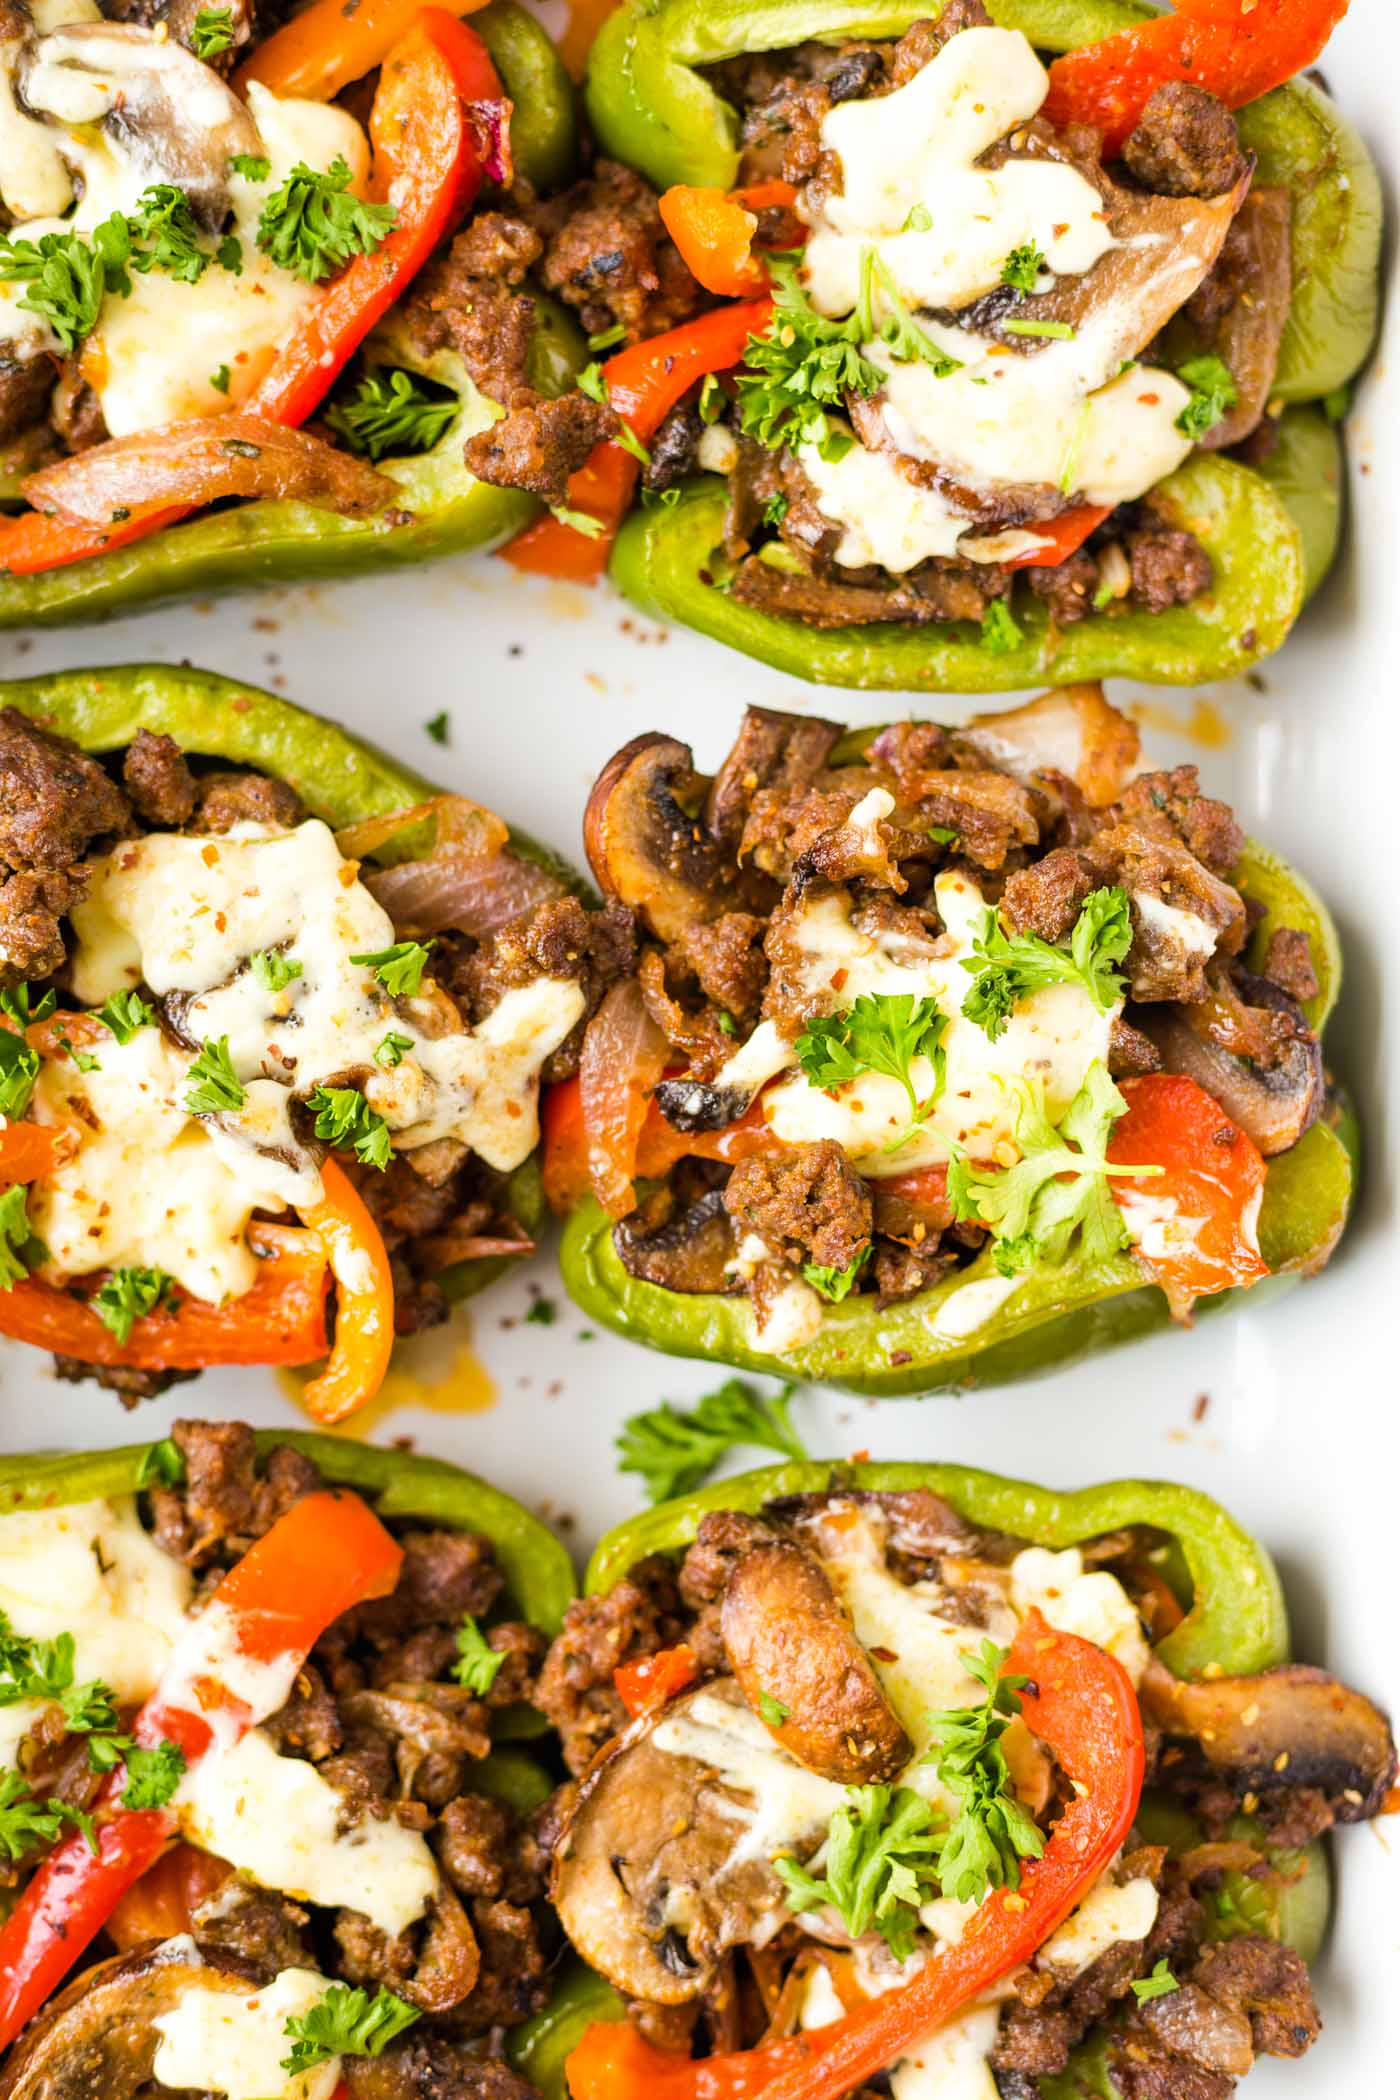 Philly Cheesesteak stuffed peppers with ground beef